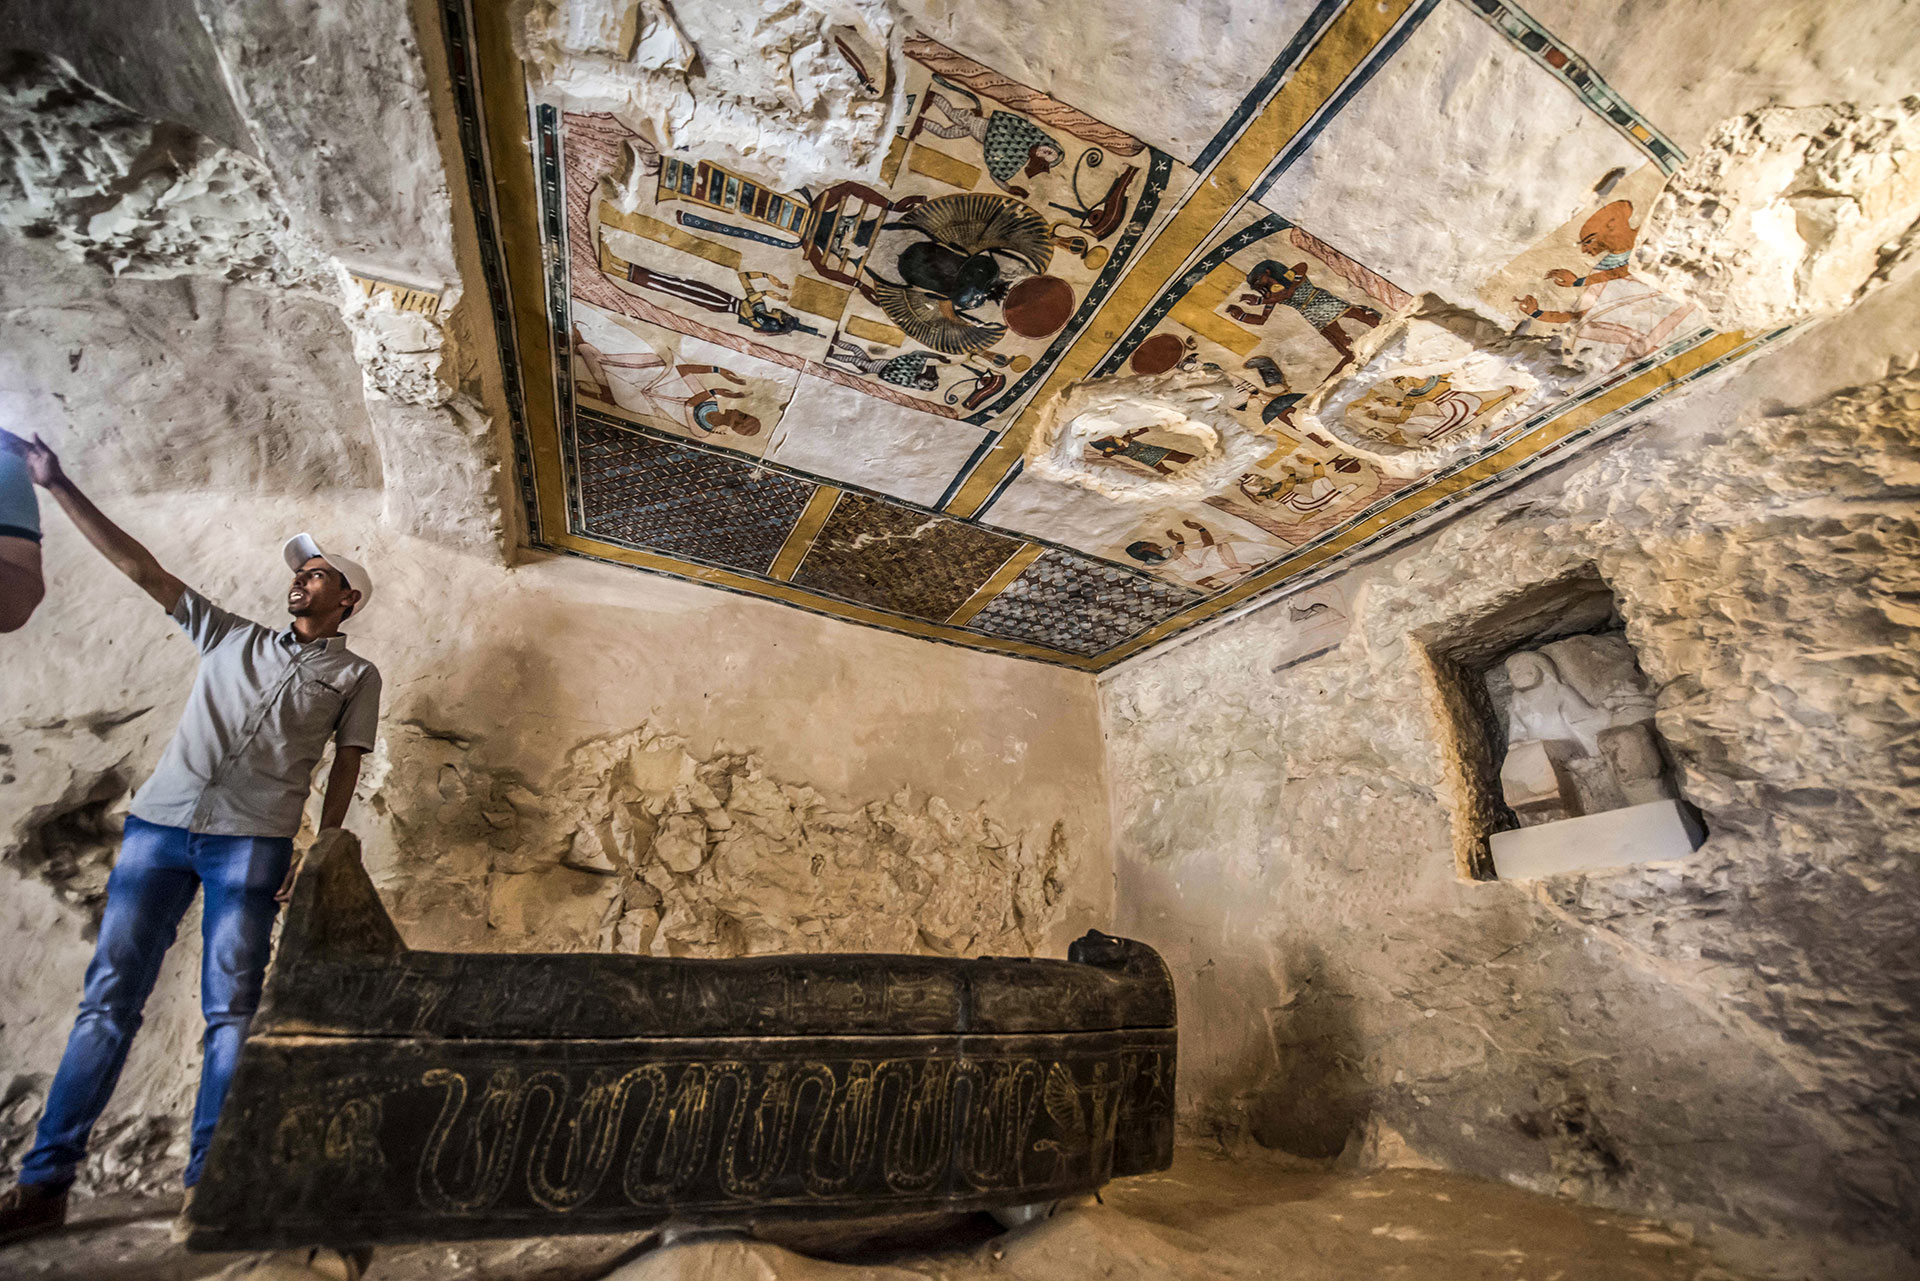 This picture taken on November 24, 2018 shows a carved black wooden sarcophagus inlaid with gilded sheets, dating to Egypt's Late period (7th-4th century BC), lying in a burial chamber decorated with colored scenes depicting the owner with members of his family, discovered by an Egyptian archaelogical mission at the site of Tomb TT28 at Al-Assasif  necropolis on the west bank of the Nile north of the southern Egyptian city of Luxor. - Located between the royal tombs at the Valley of the Queens and the Valley of the Kings, the Al-Assasif necropolis is the burial site of nobles and senior officials close to the pharaohs. (Photo by Khaled DESOUKI / AFP)